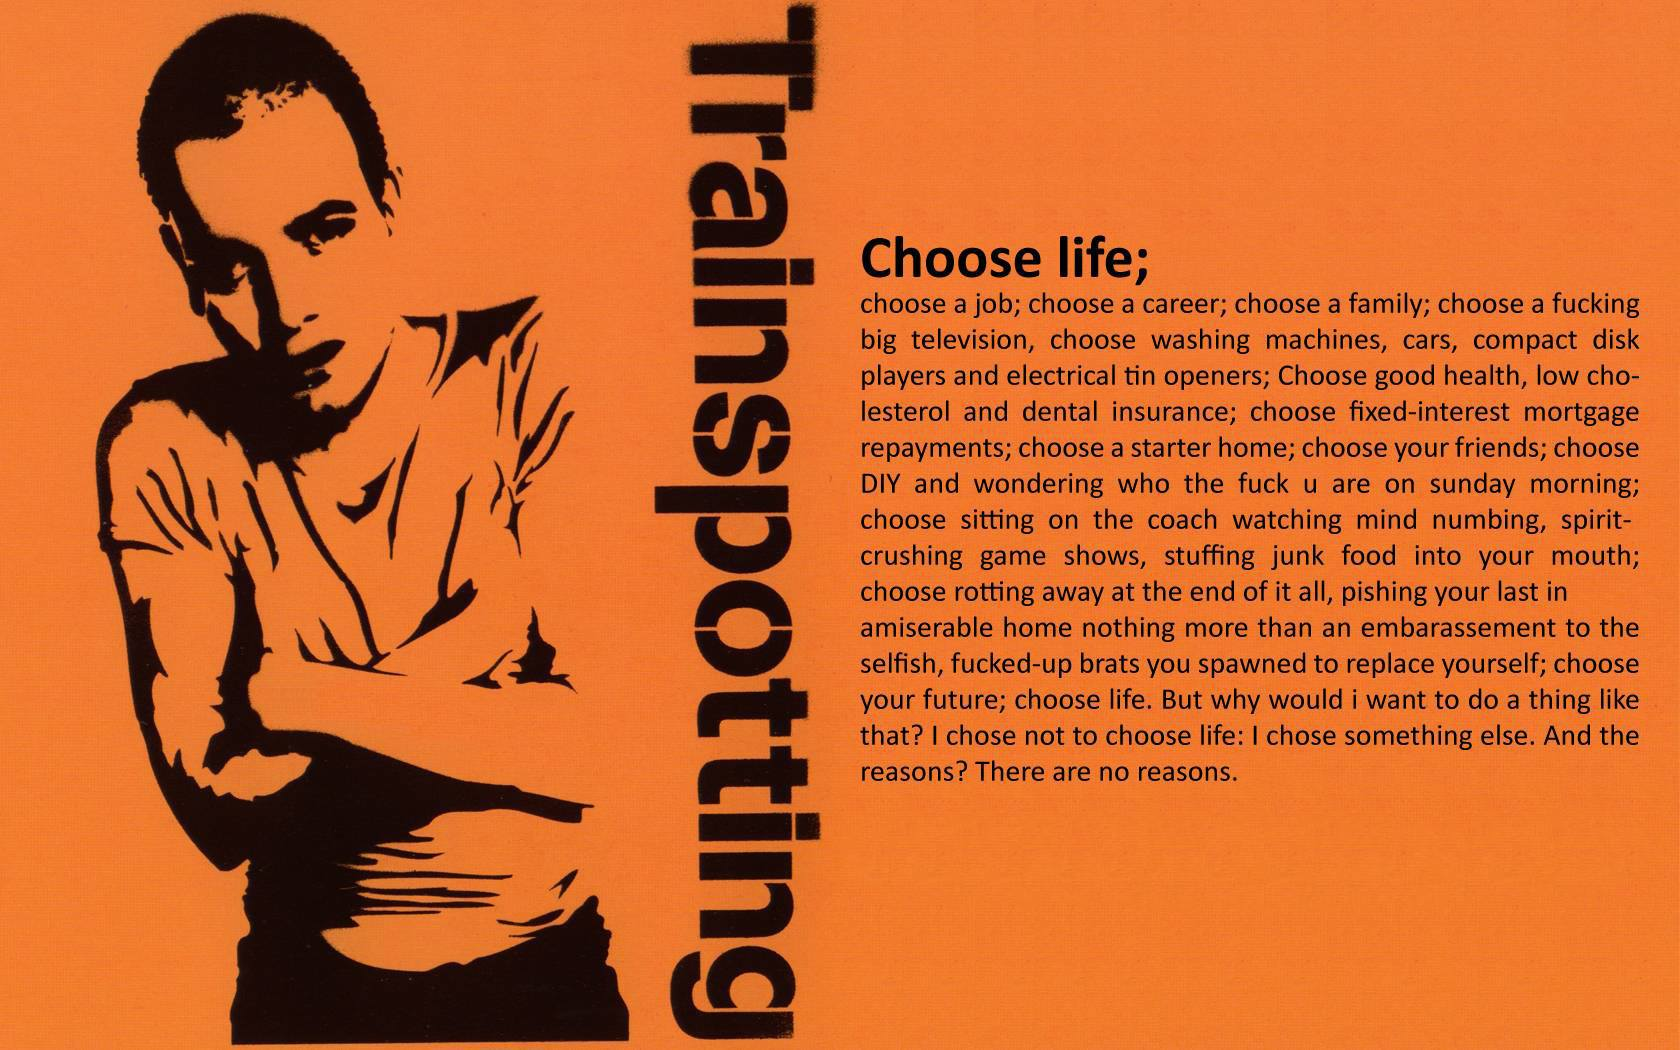 """Even Mark Renton couldn't avoid making a decision---to  choose """"something else""""."""